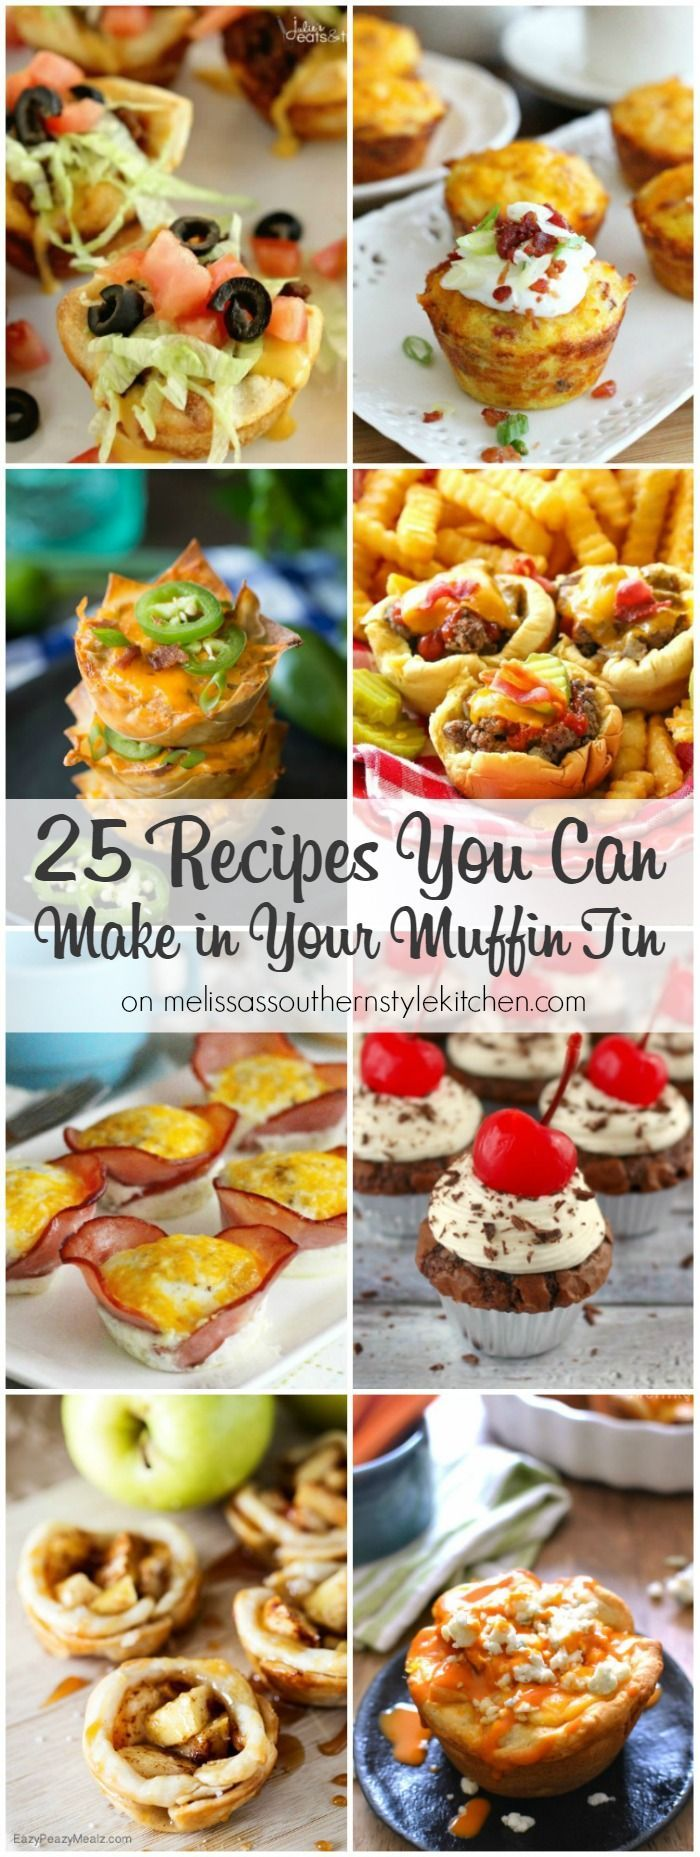 25 Recipes You Can Make in Your Muffin Tin HERO                                                                                                                                                                                 More